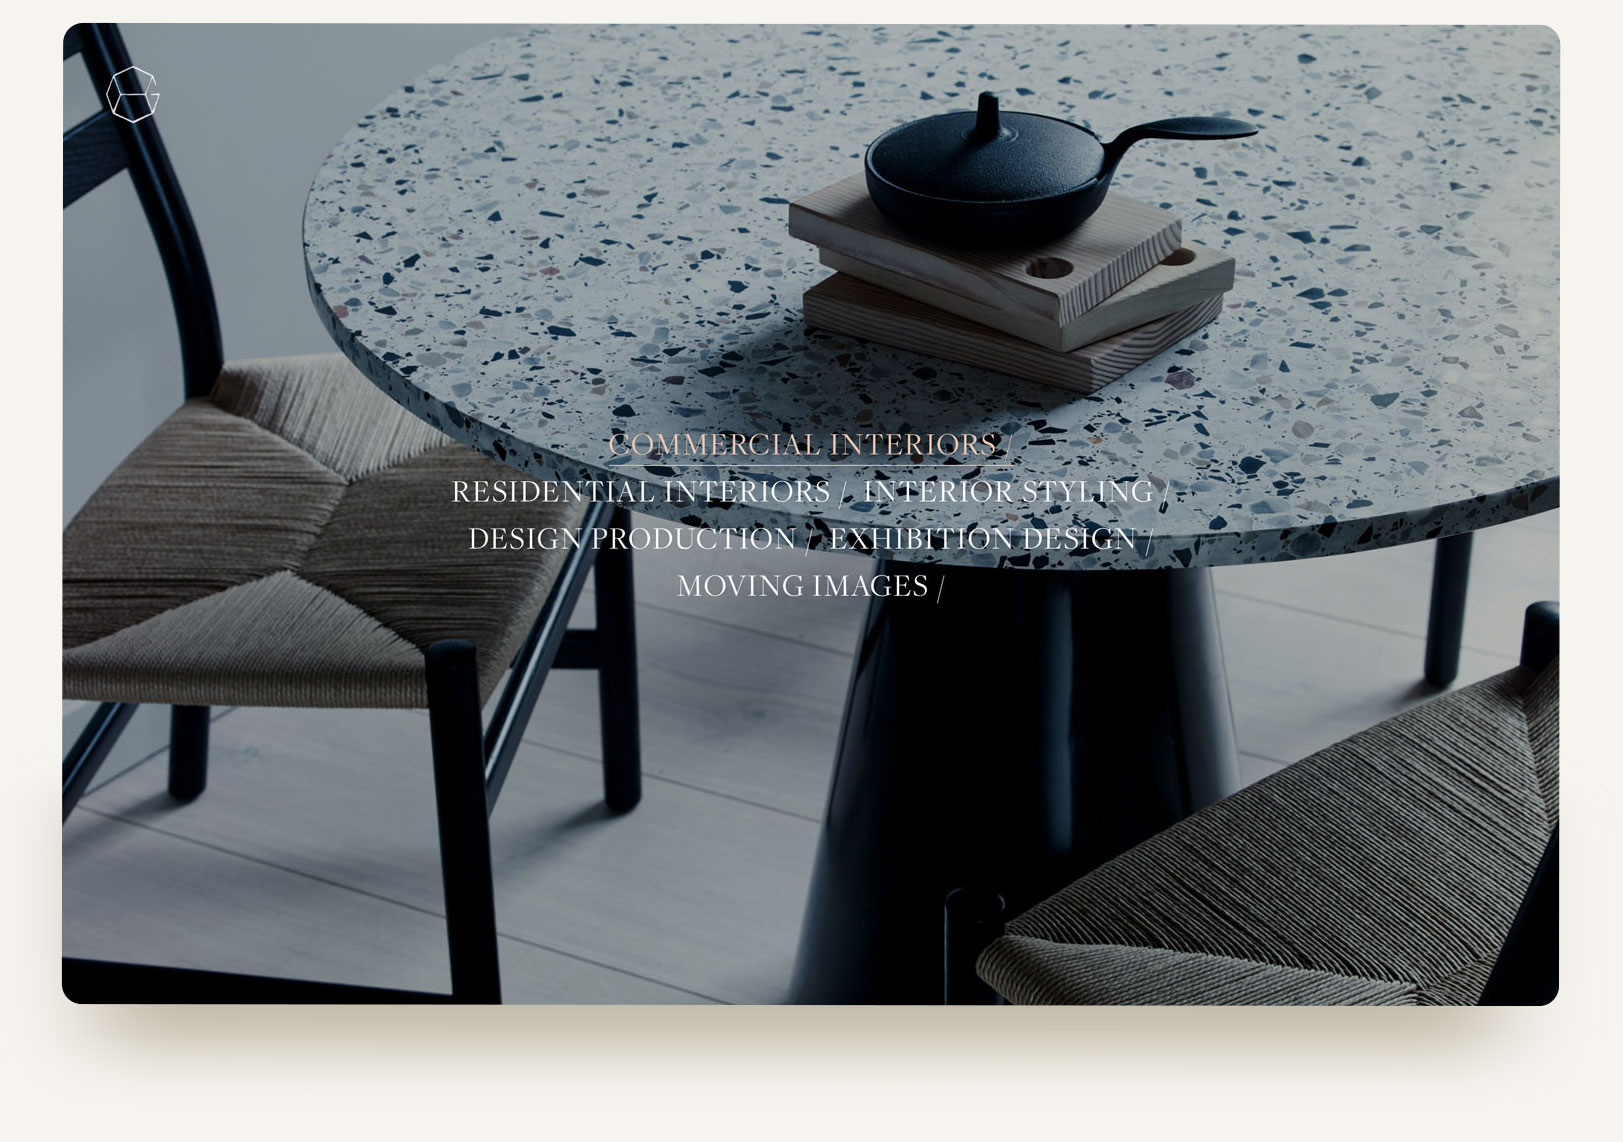 House of Grey commercial interior design studio portfolio homepage gallery carousel with typography rollover and video. Squarespace website design and custom code by Brittany Hurdle beckon webeckon